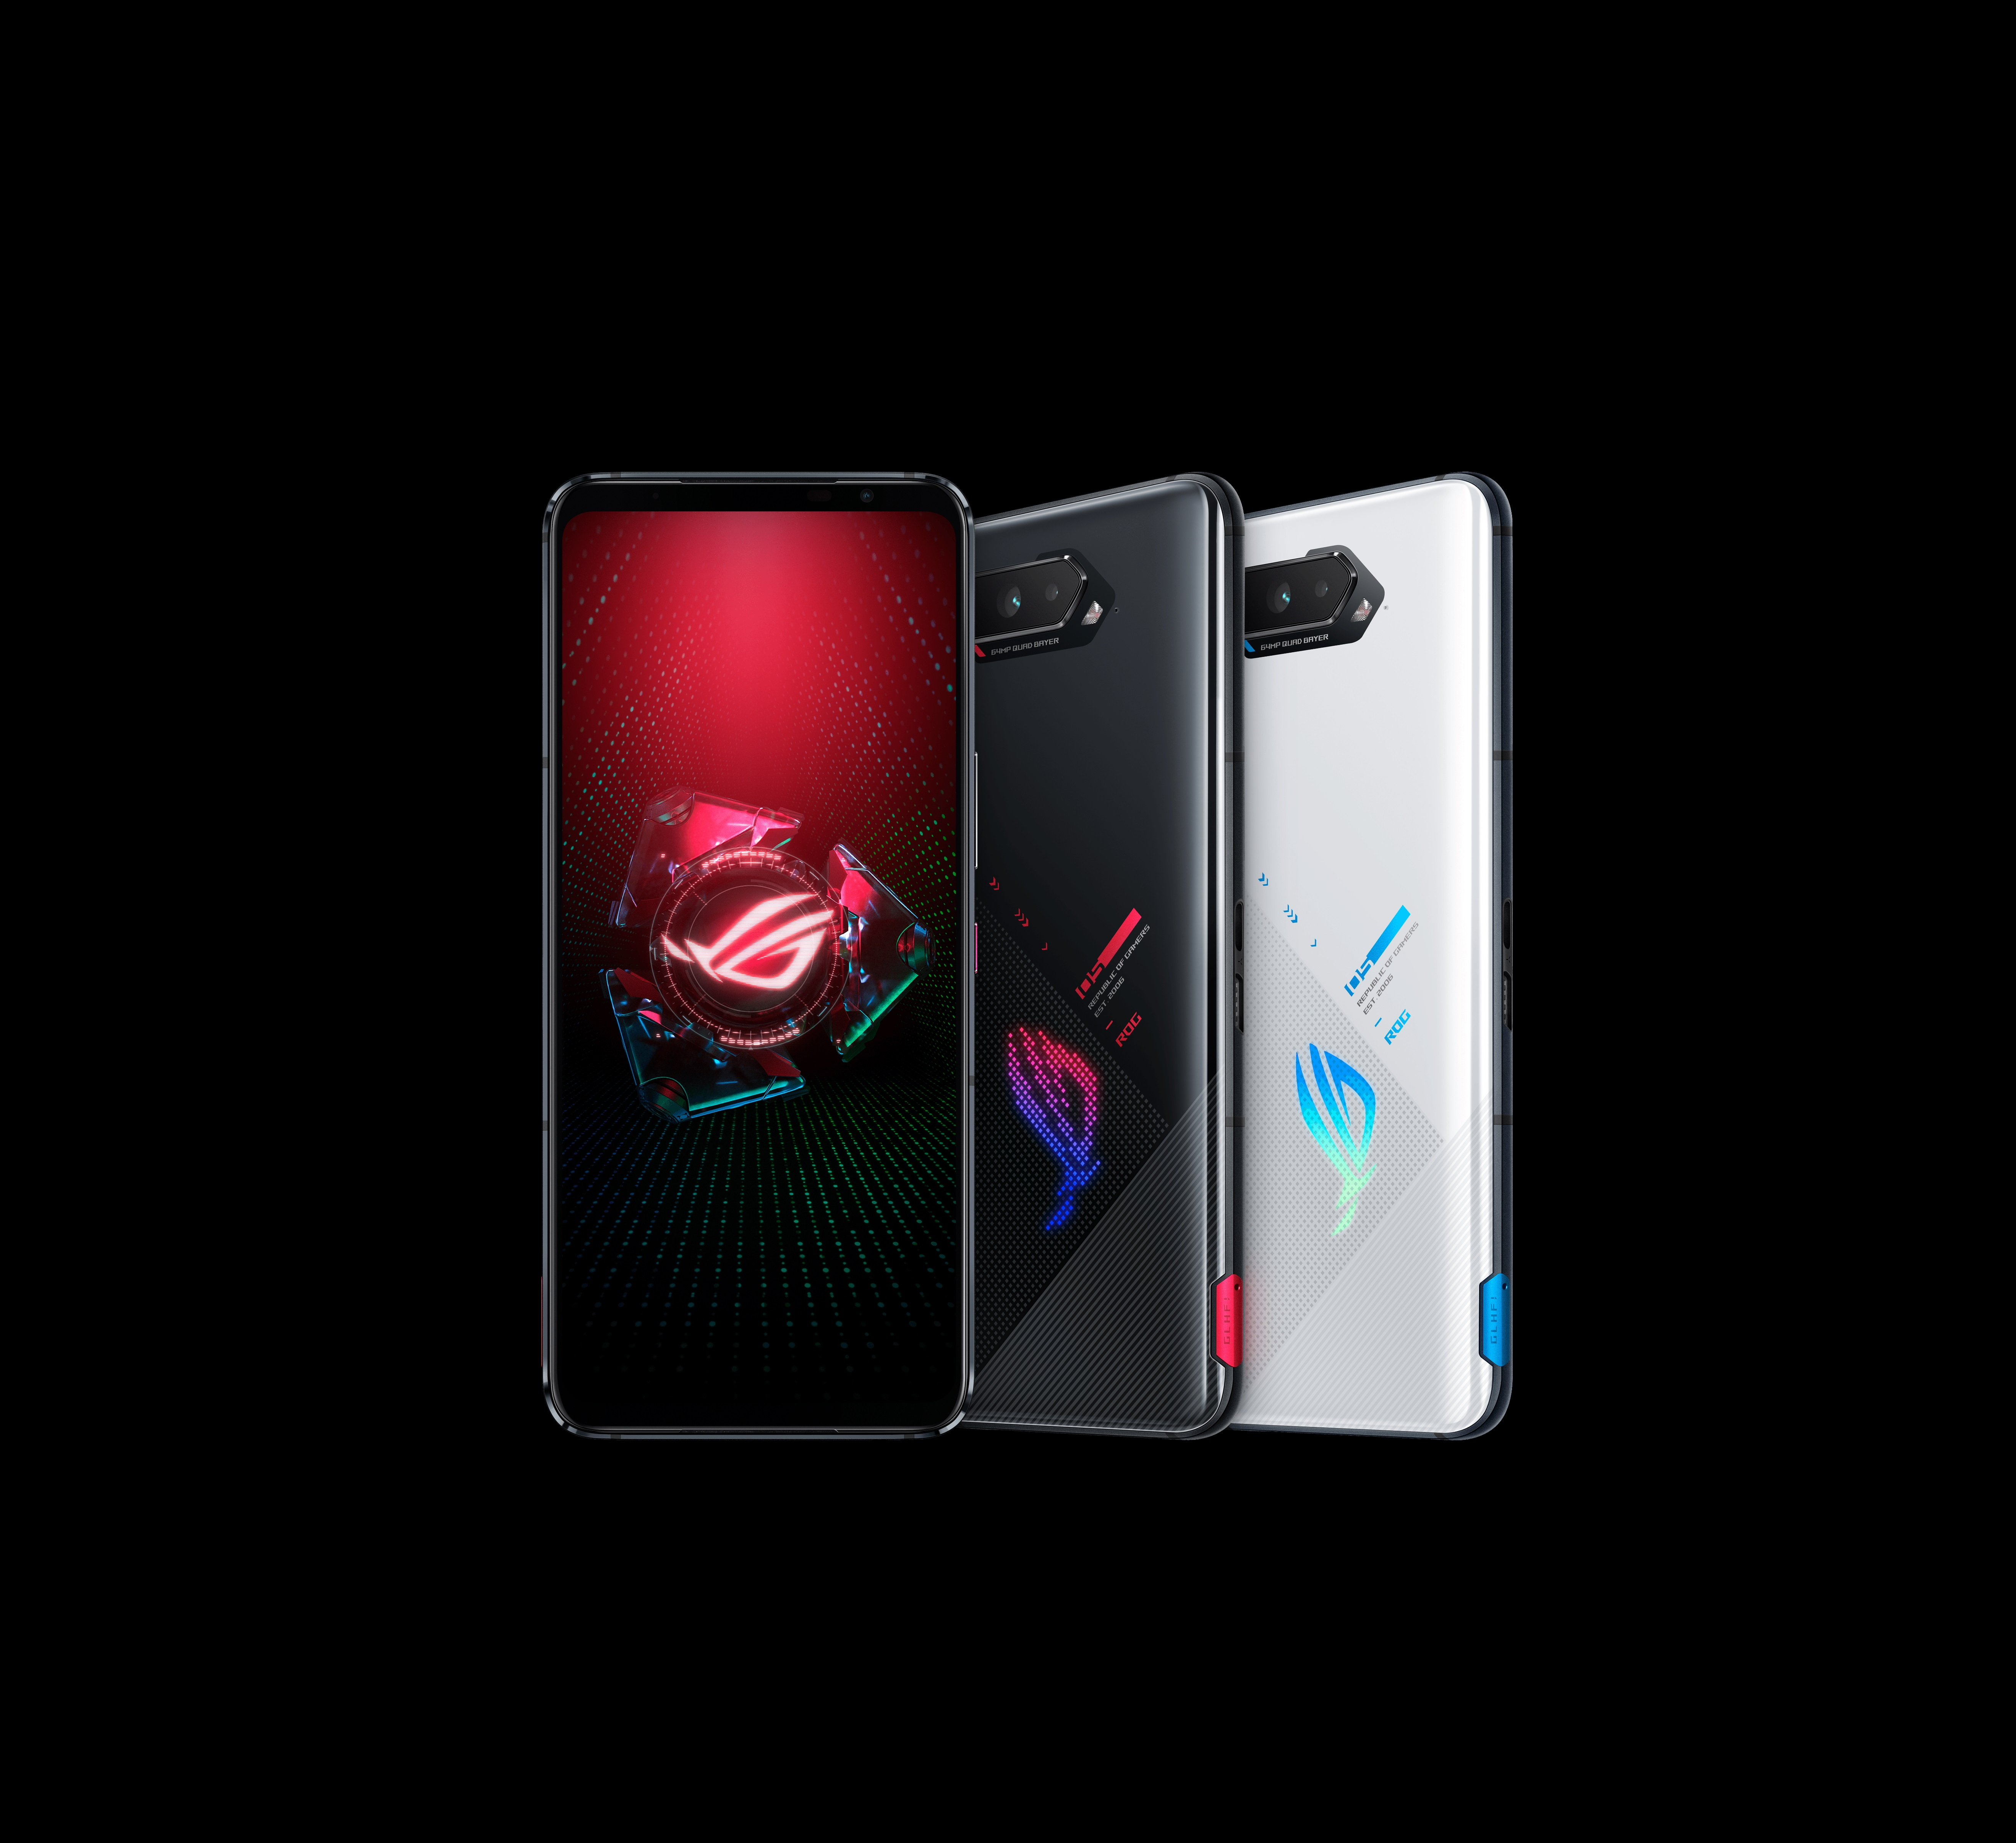 ASUS ROG Phone 5 Series Advances the State of Play with the Industry's First AI Powered Visual Processor from Pixelworks